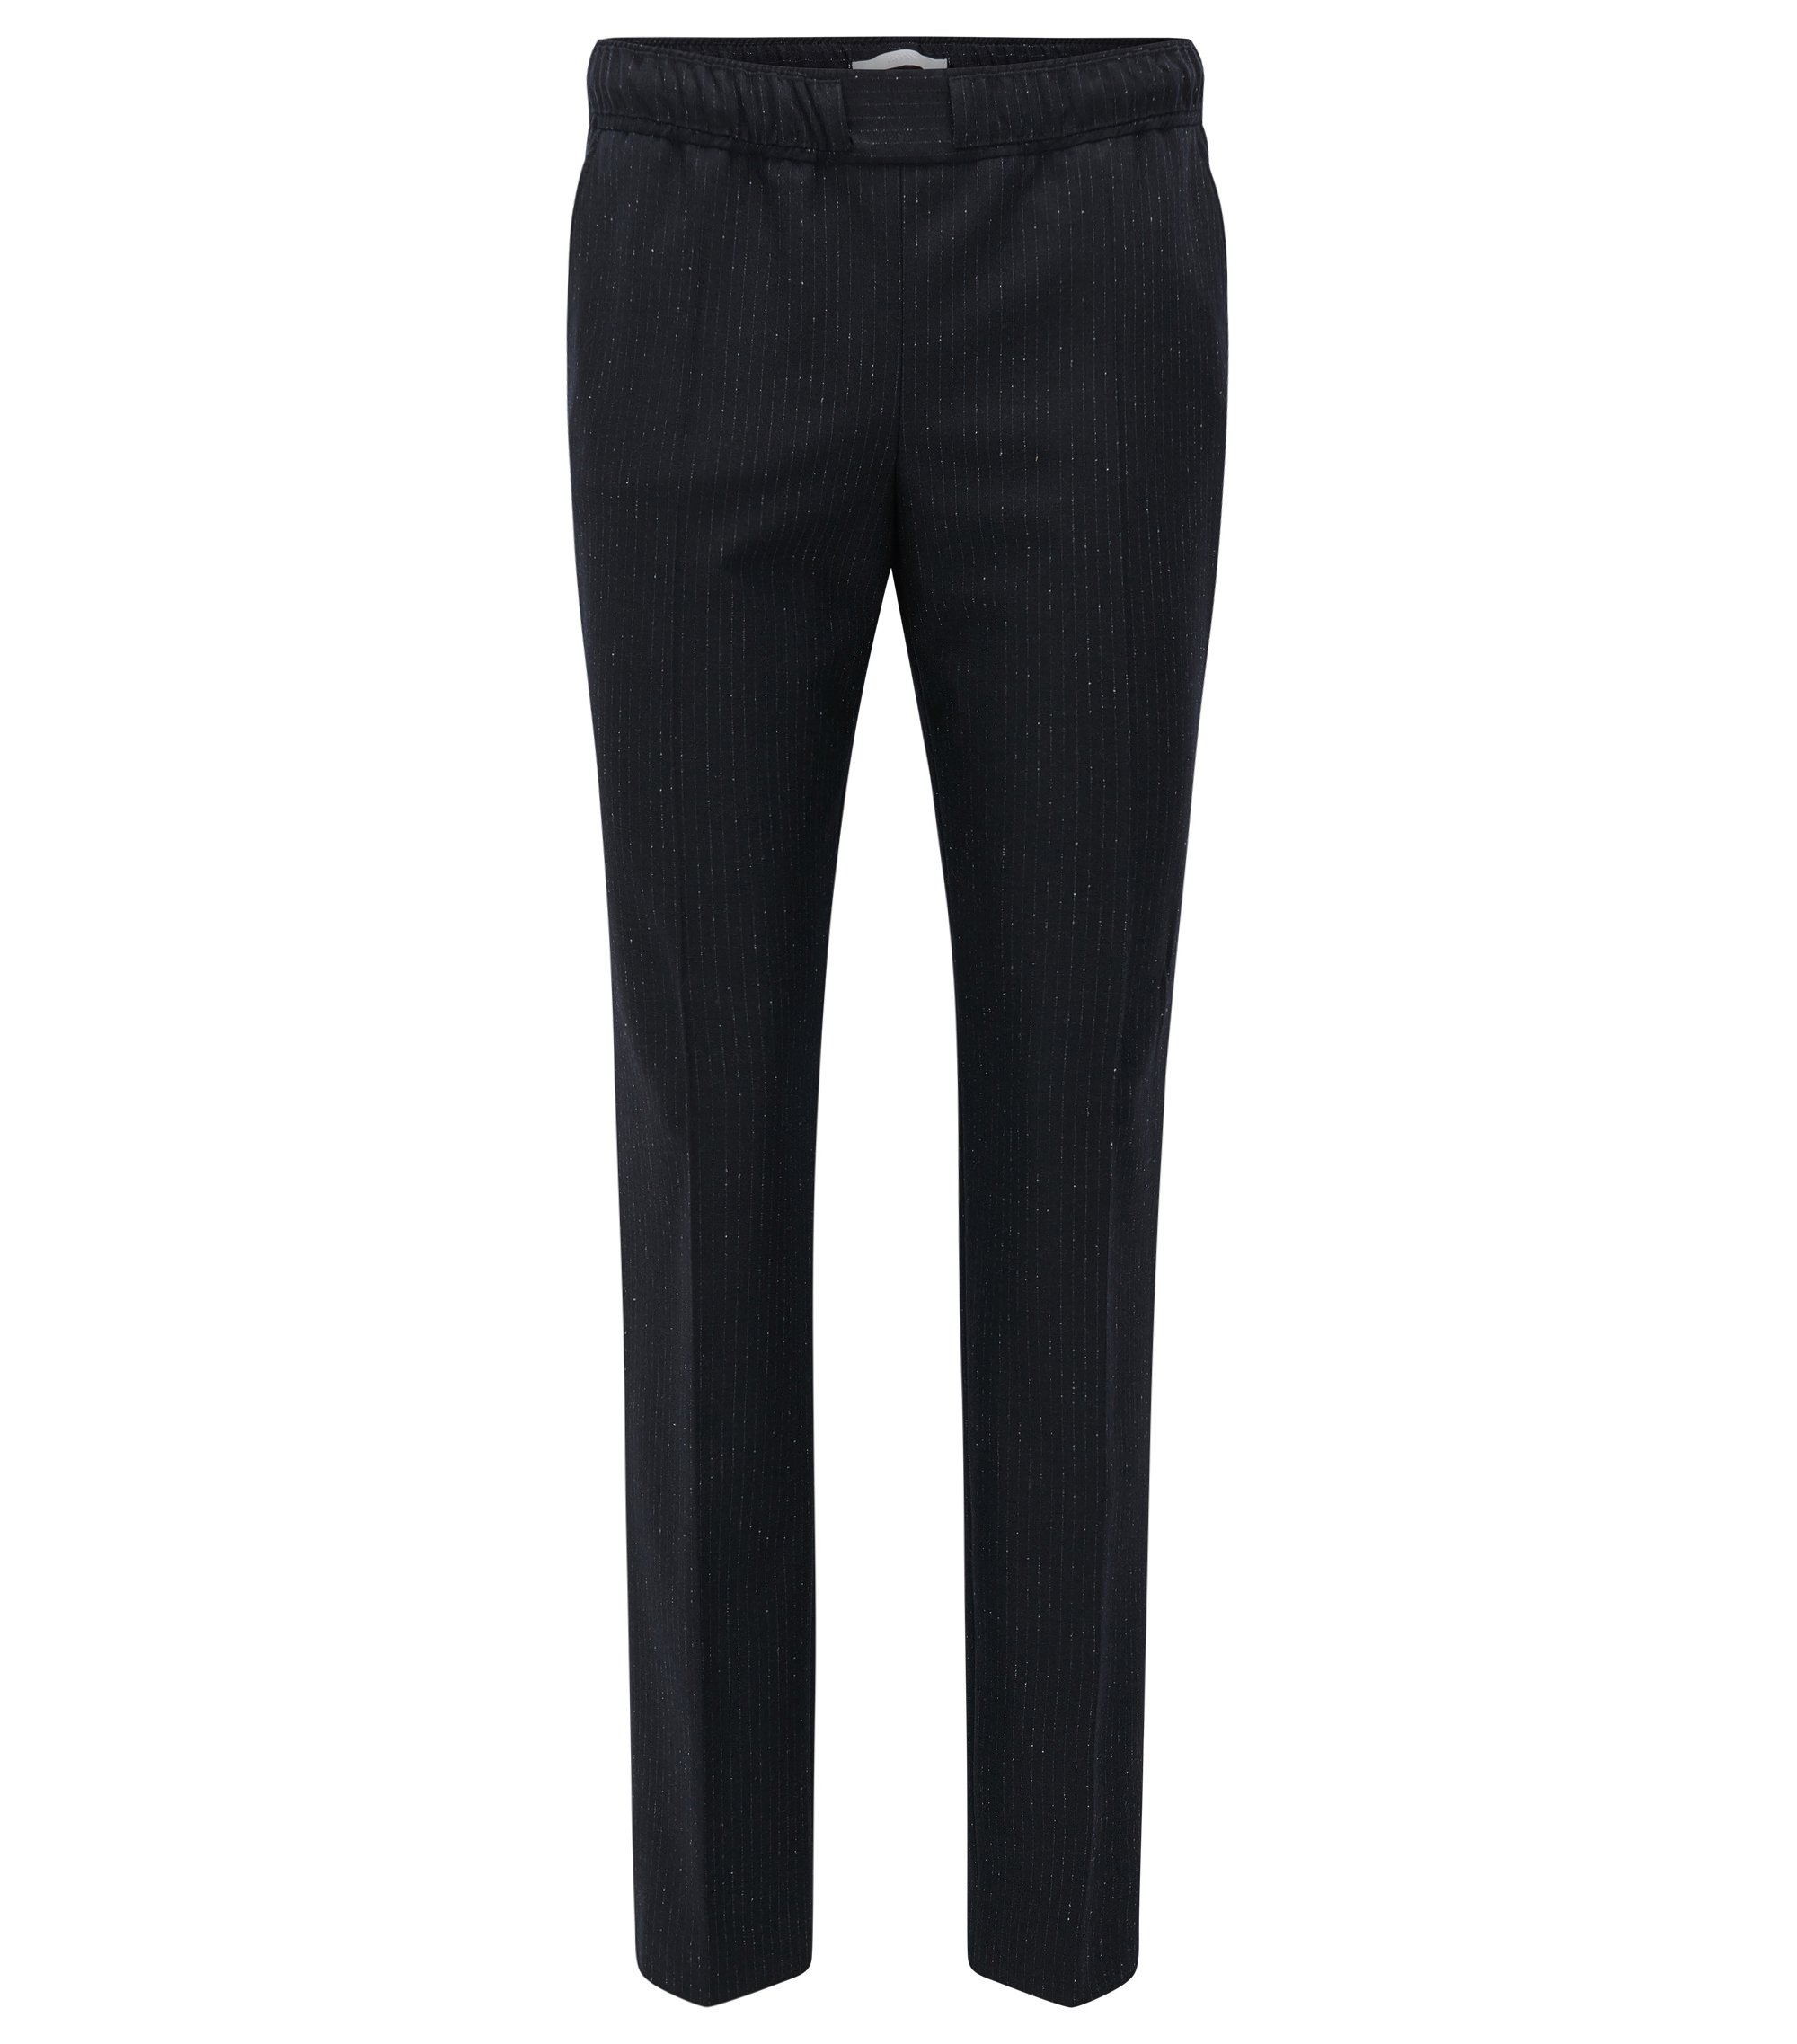 Relaxed-fit trousers in a wool mix, Patterned